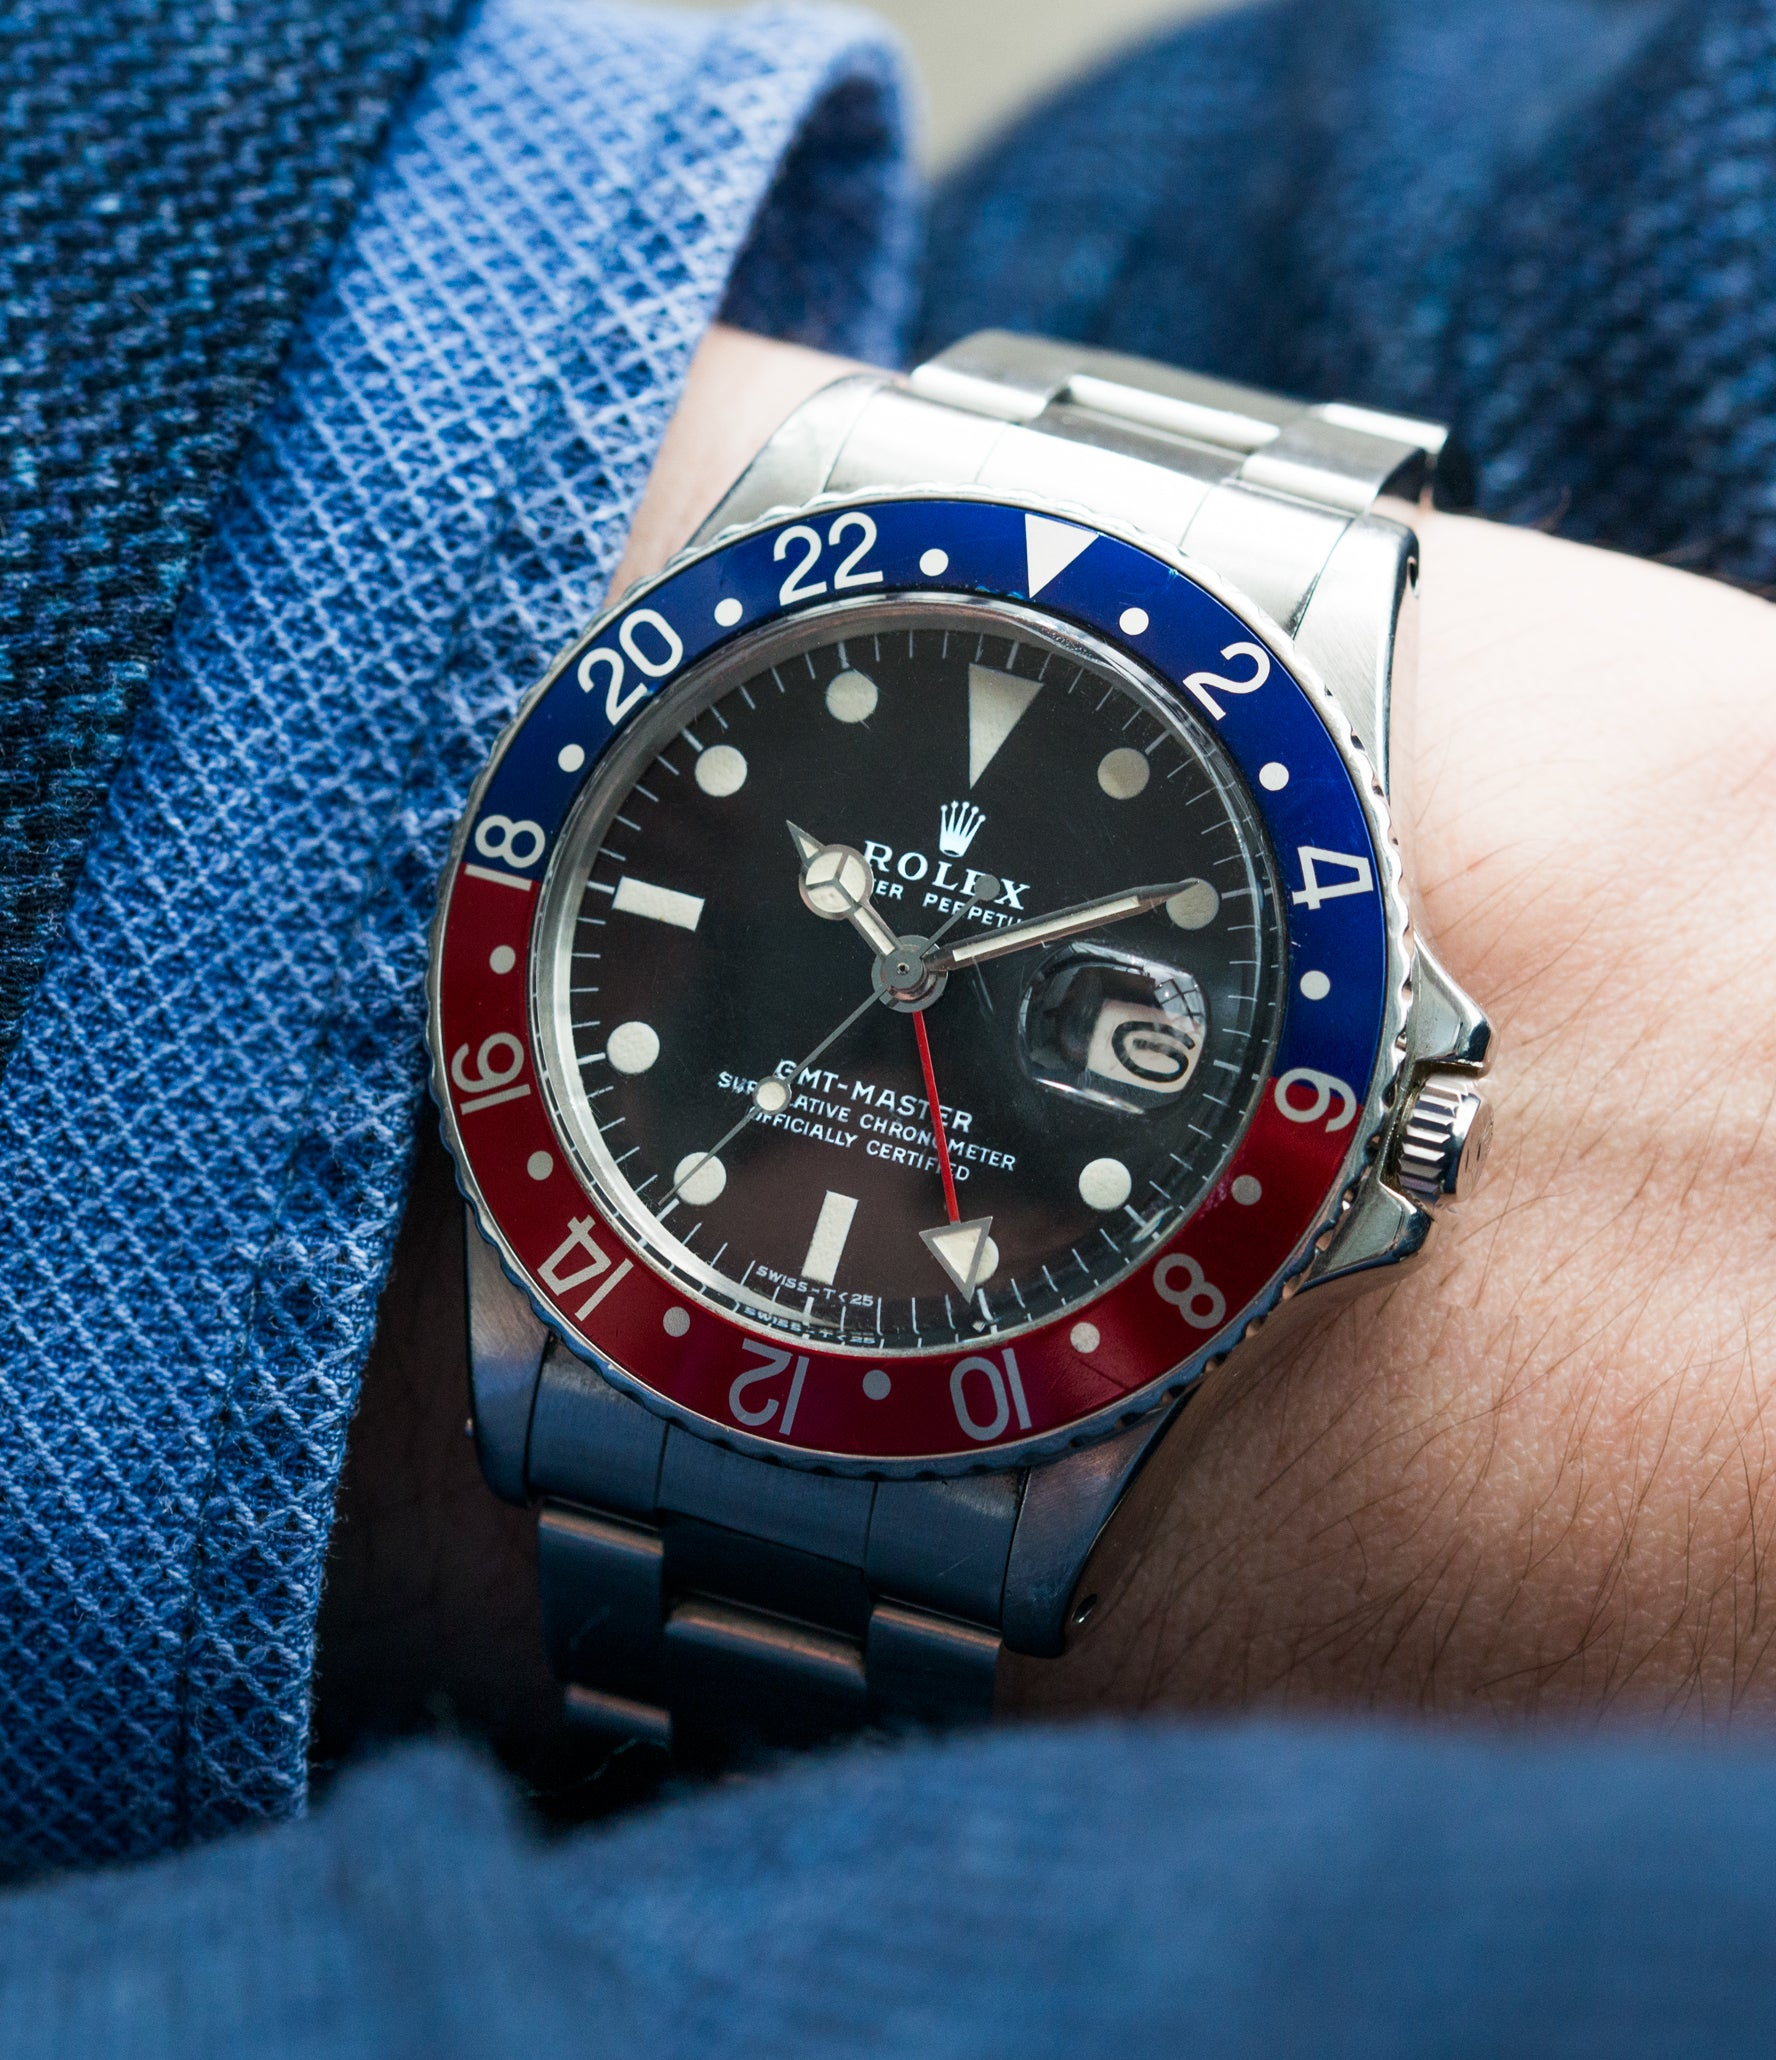 on the wrist vintage Rolex GMT Master 1675 steel traveller sport watch Pepsi bezel for sale online at A Collected Man London vintage watch specialist